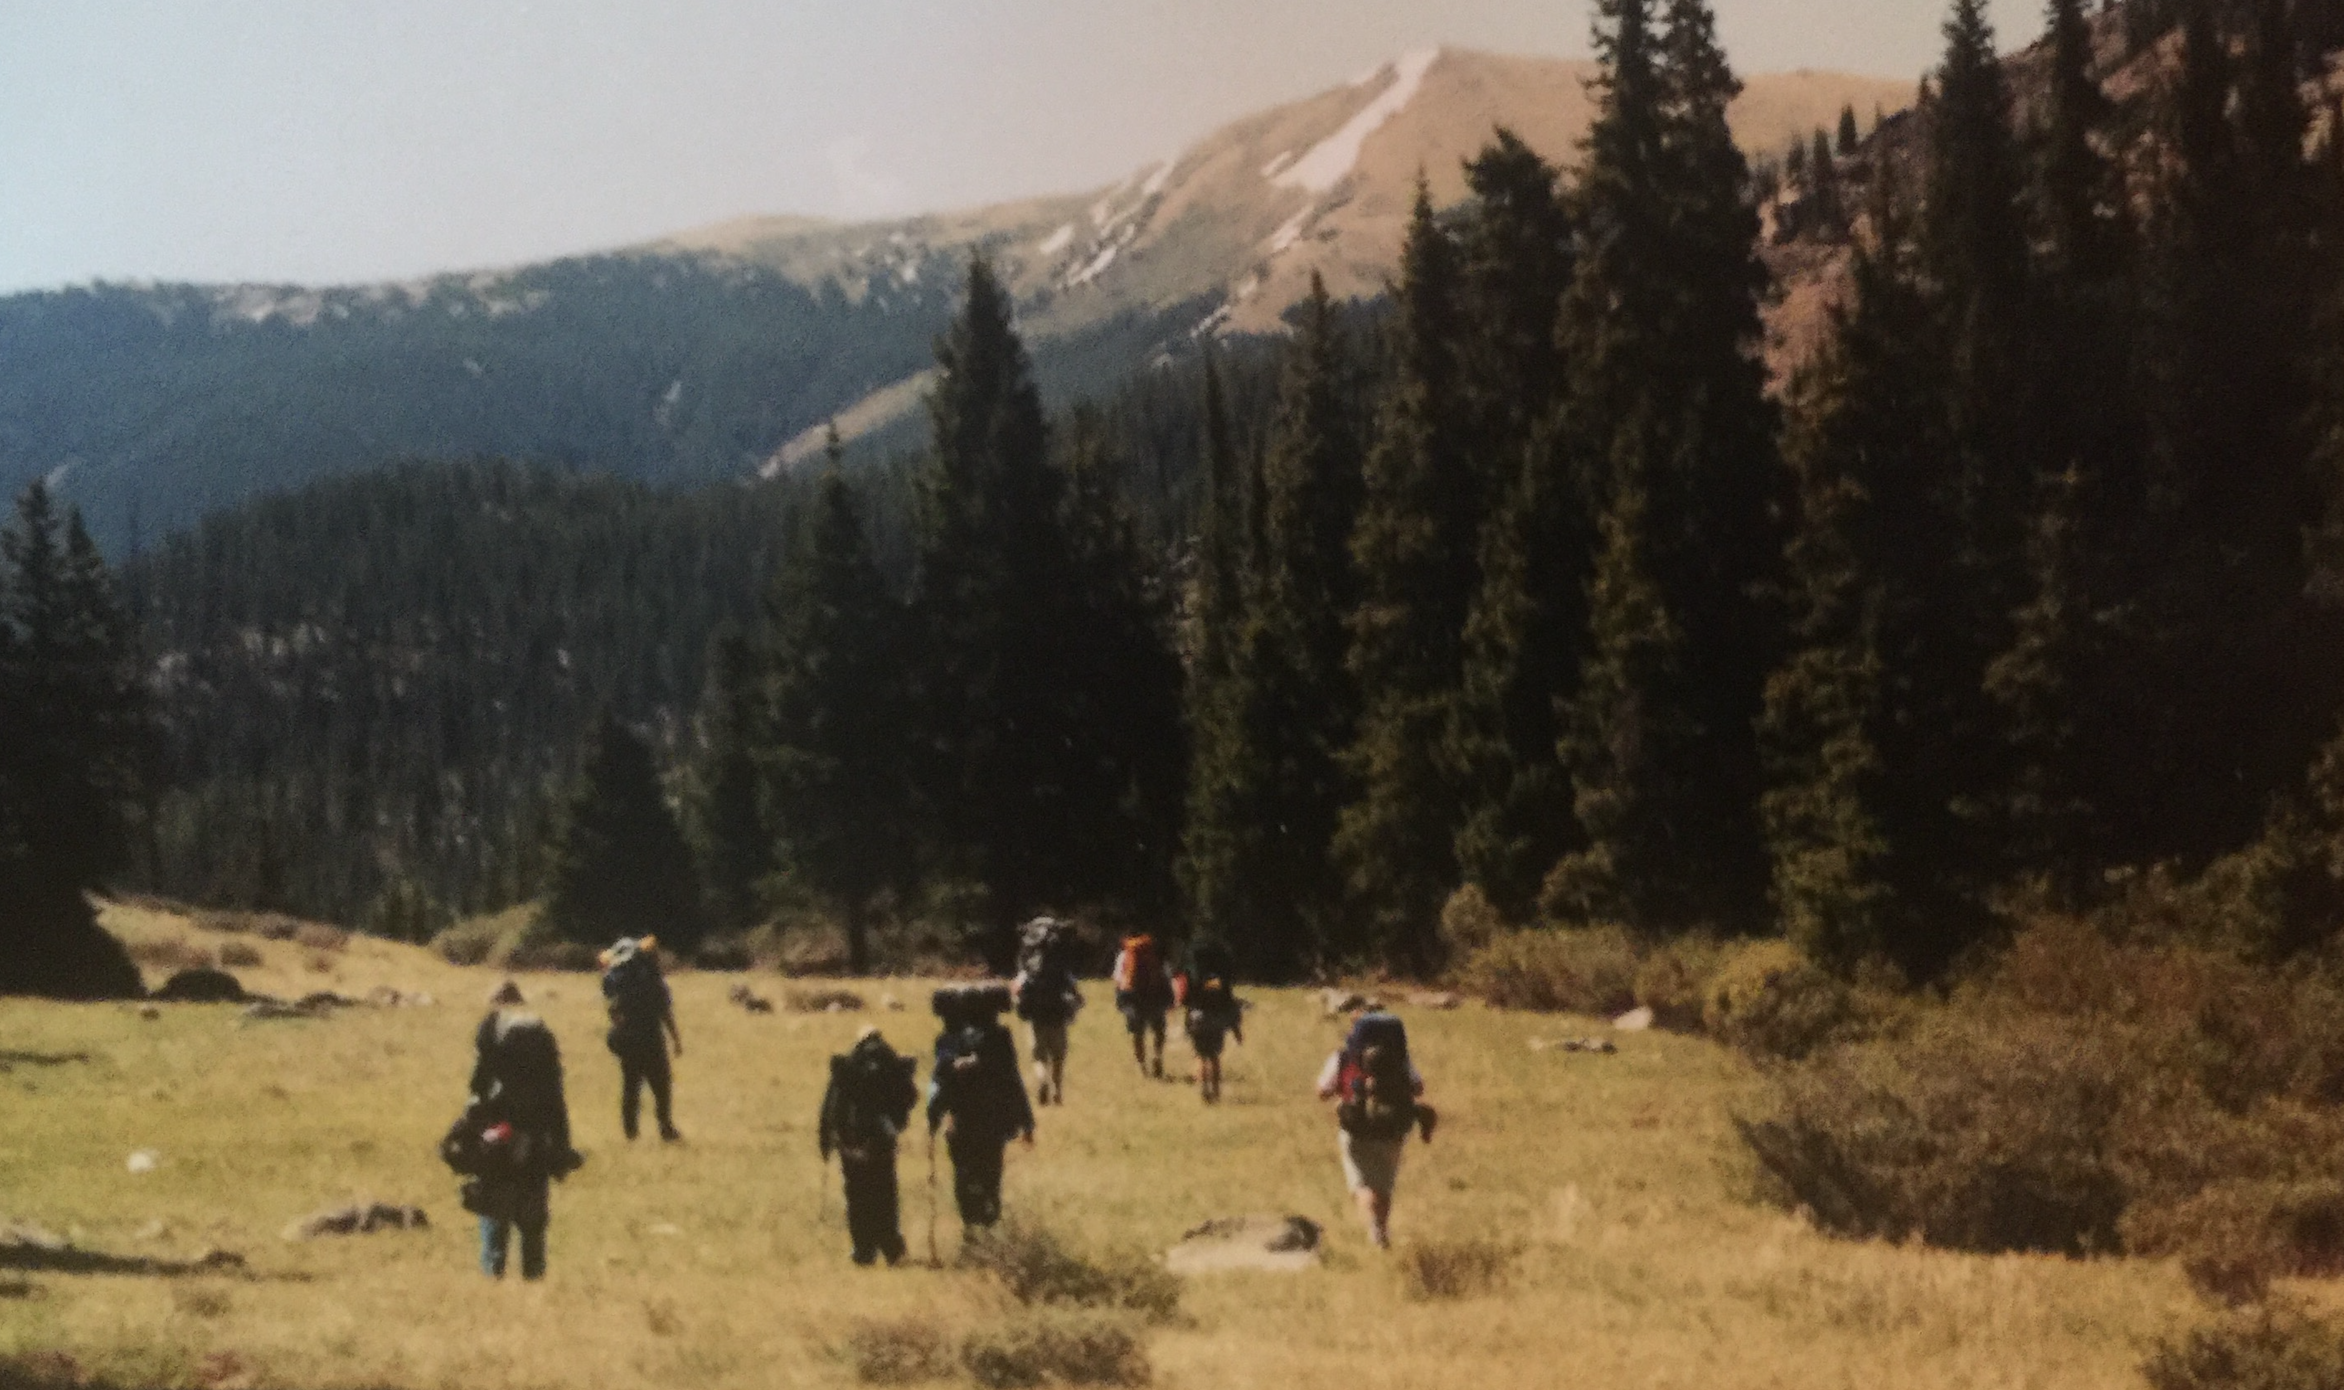 An actual picture of our Bama hiking group in Colorado.